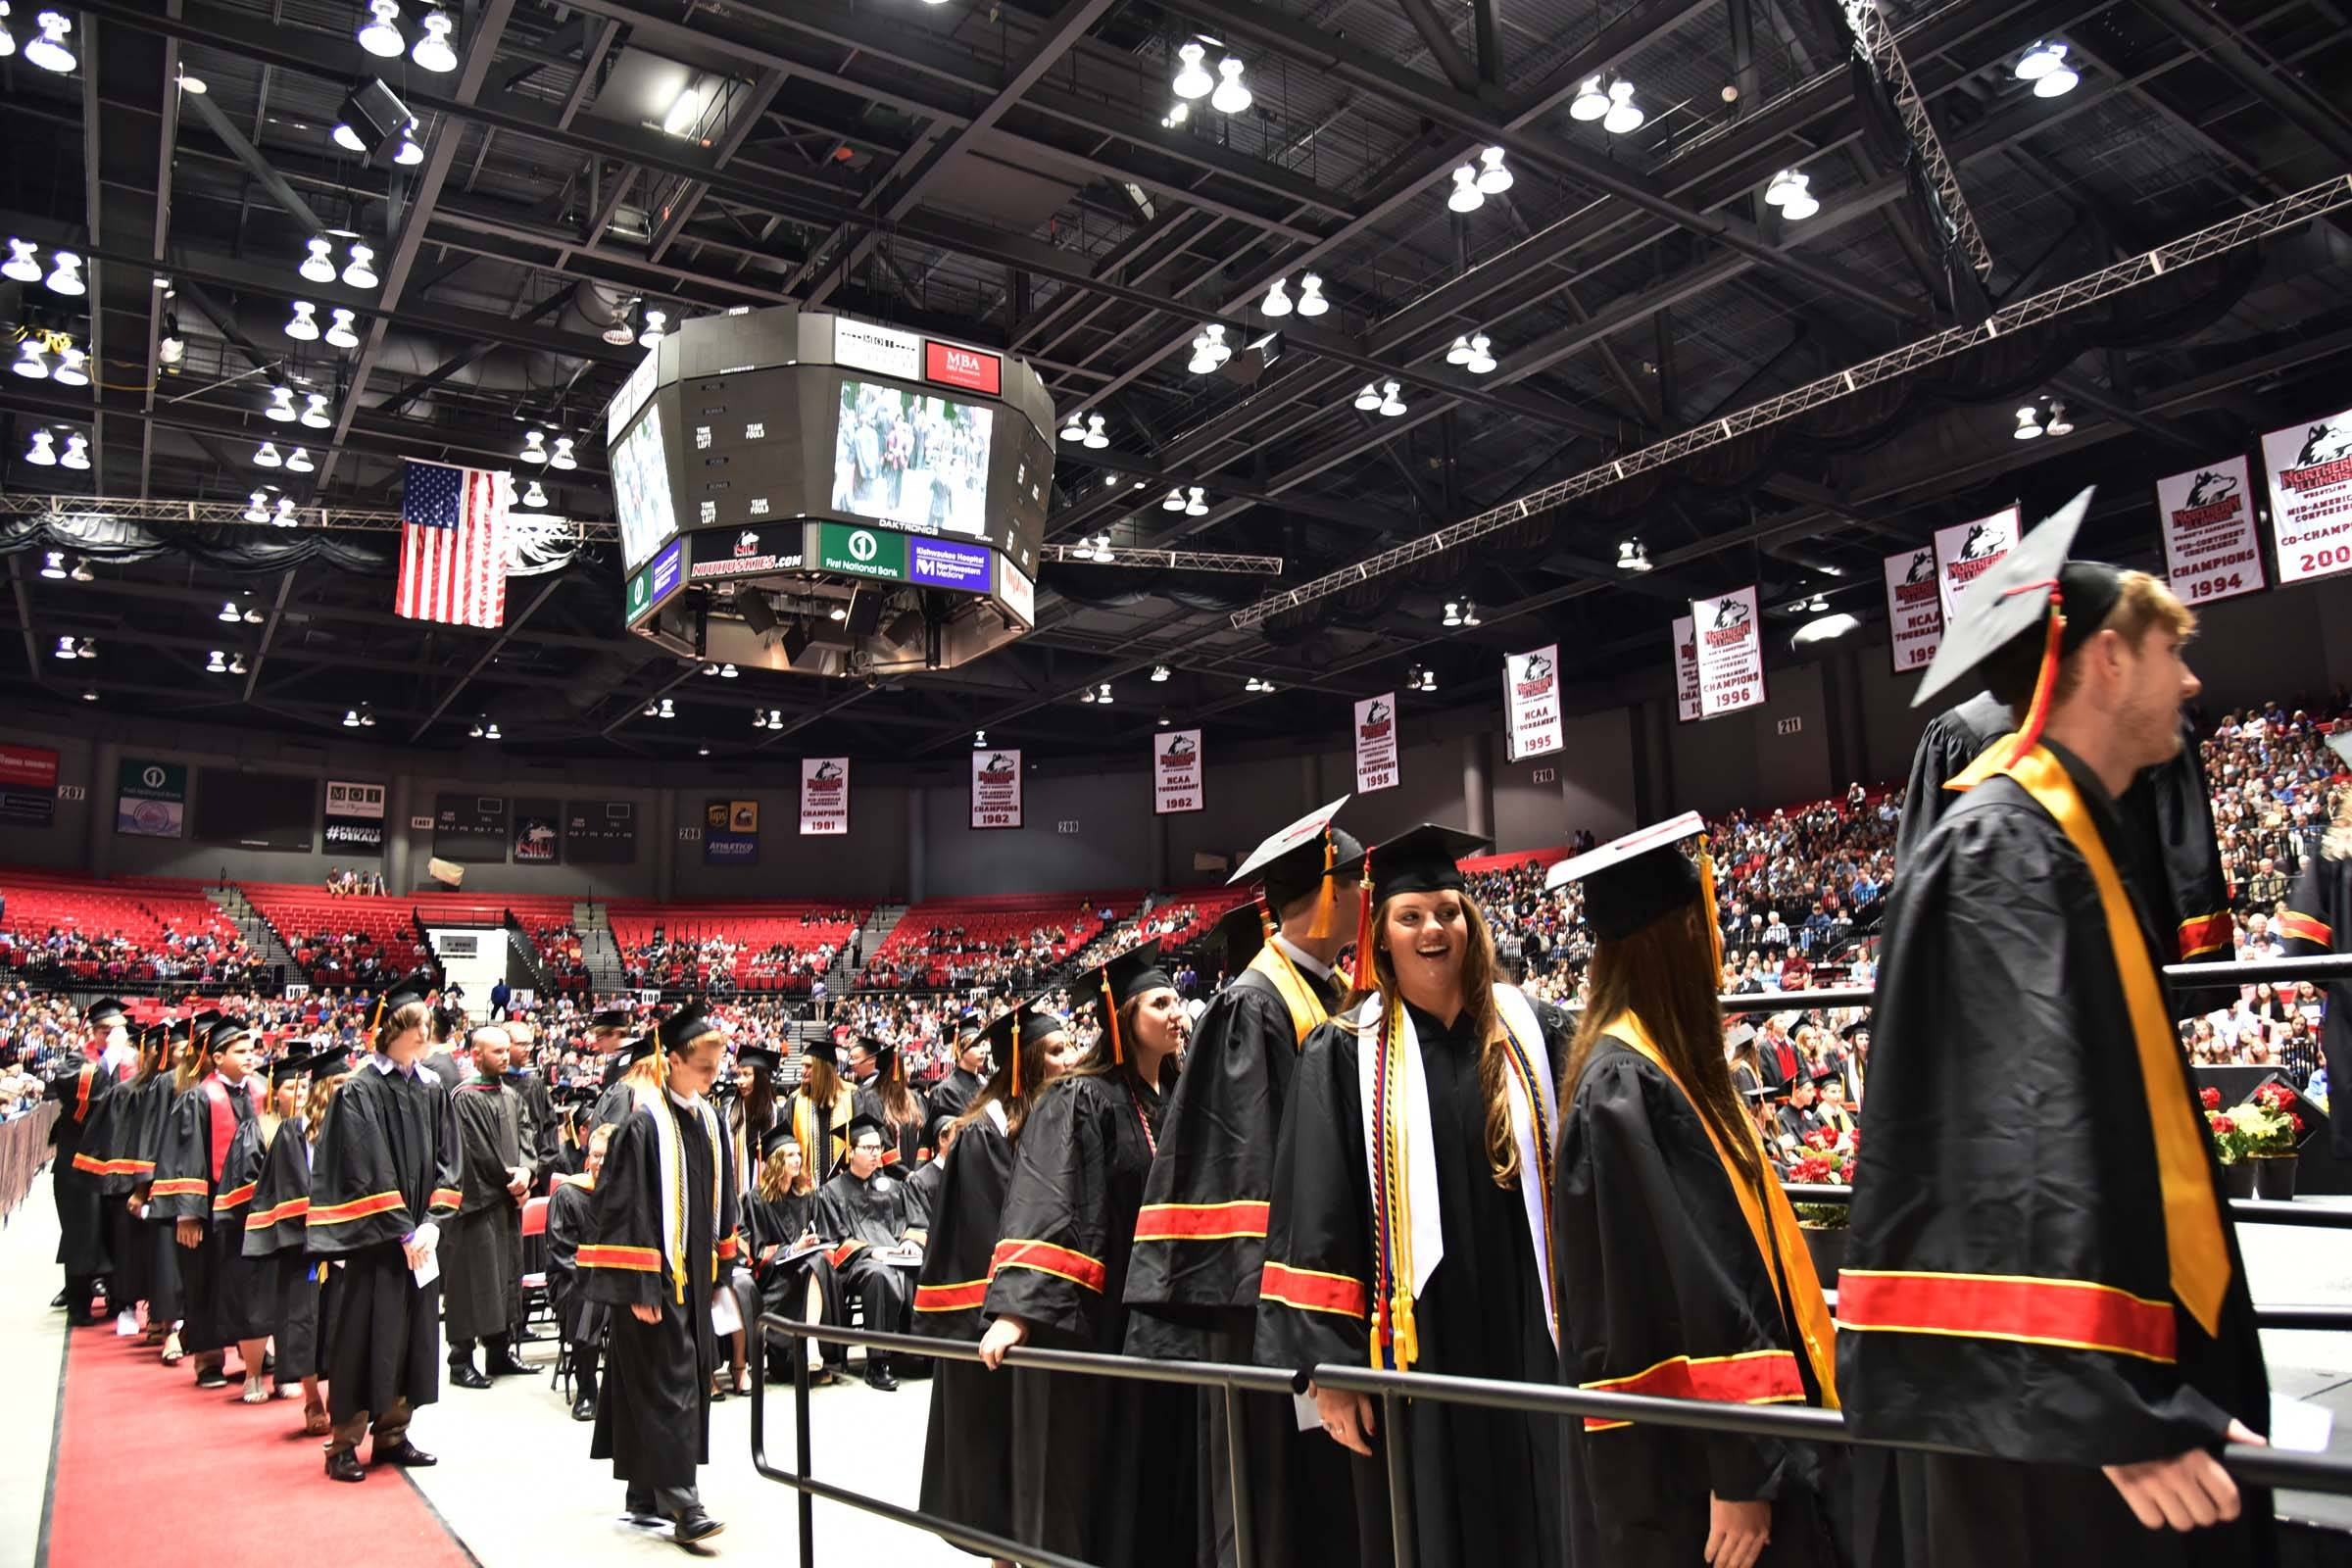 Batavia High School's graduation ceremony was held at the Northern Illinois University Convocation Center in DeKalb. It costs between $7,500 and $18,000 to host graduations there.